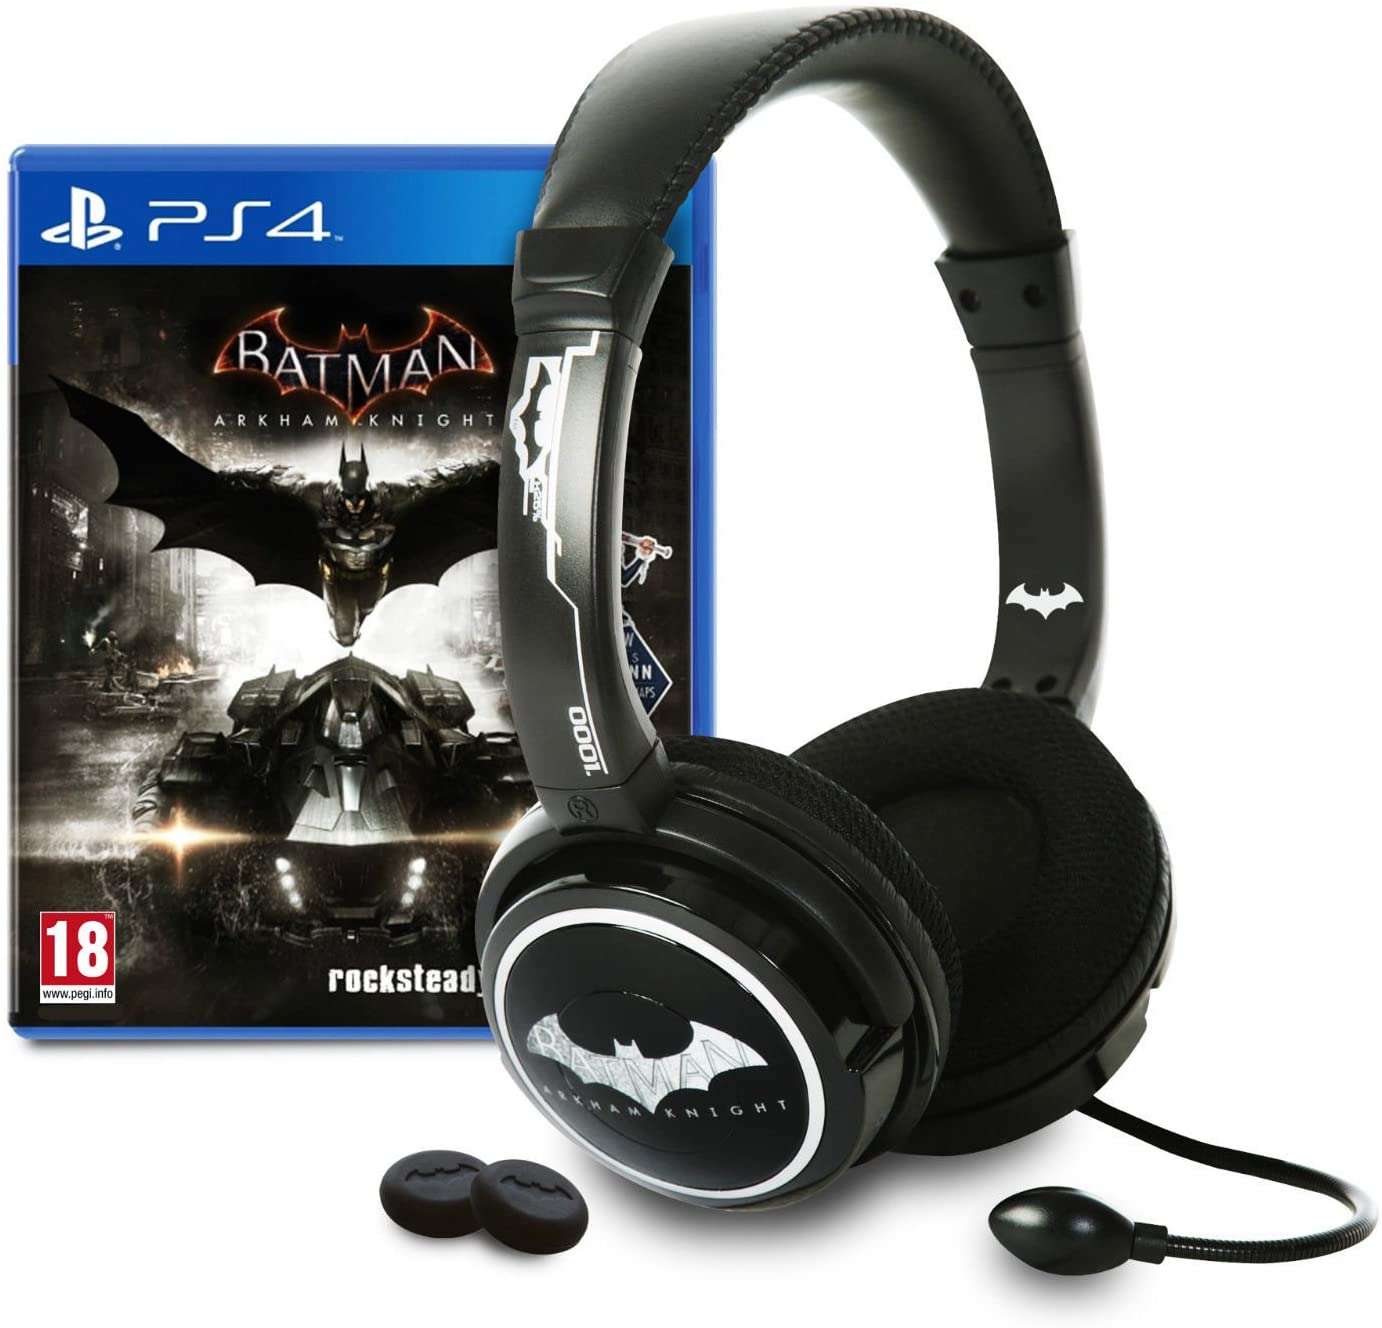 Batman Arkham Knight PS4 Game & Stereo Headset & Thumb Grips